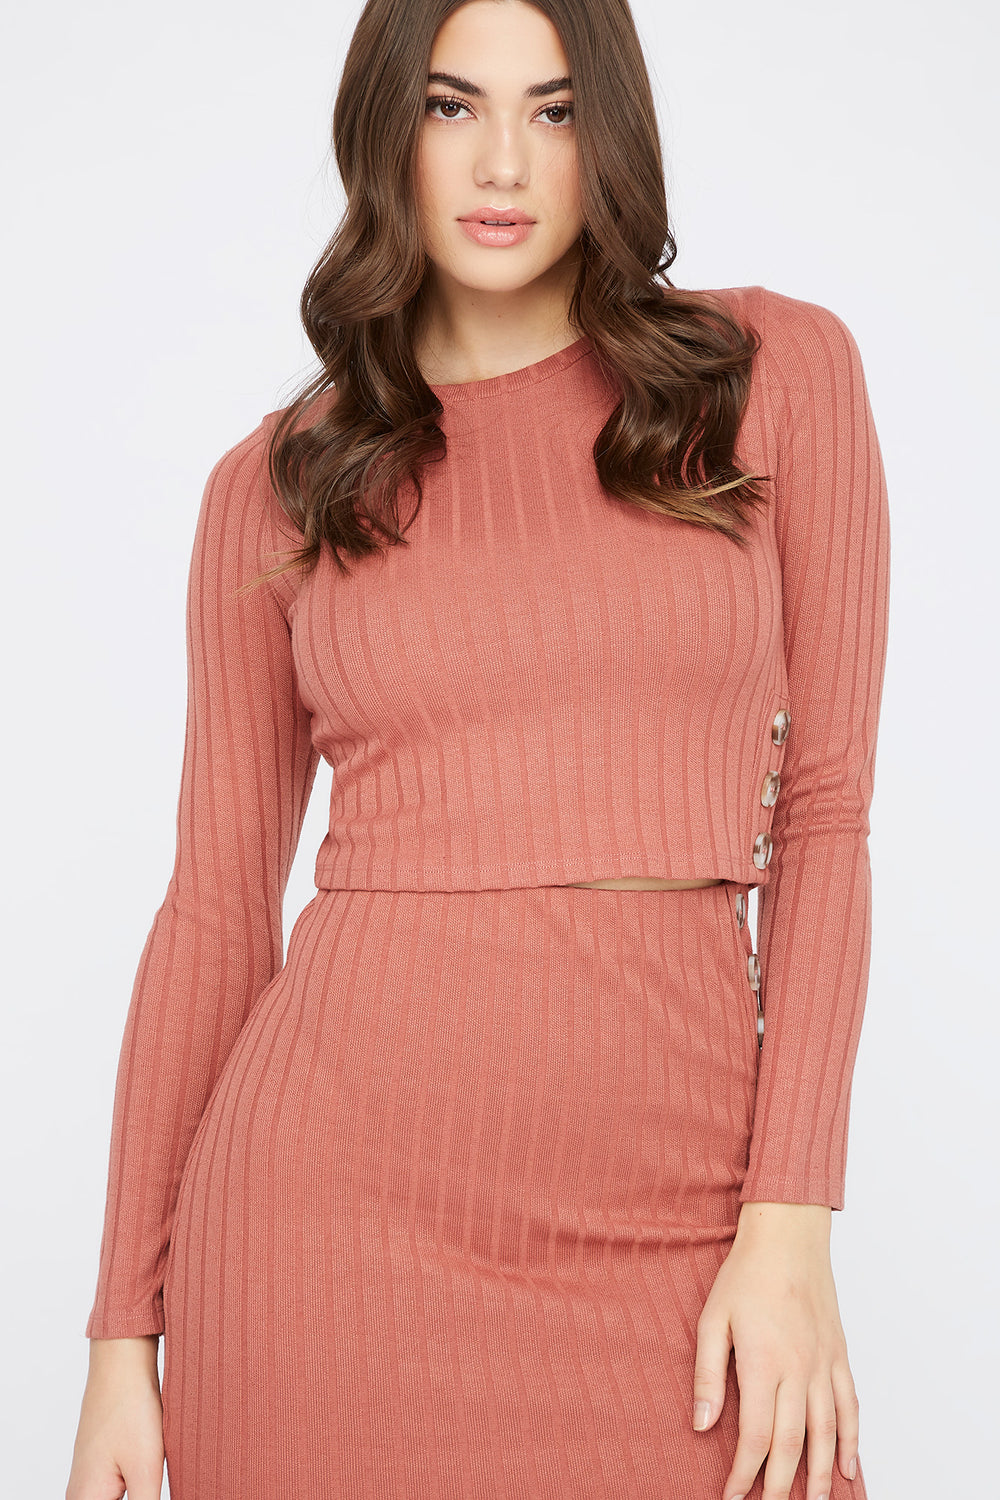 Ribbed Button Side Long Sleeve Dark Pink